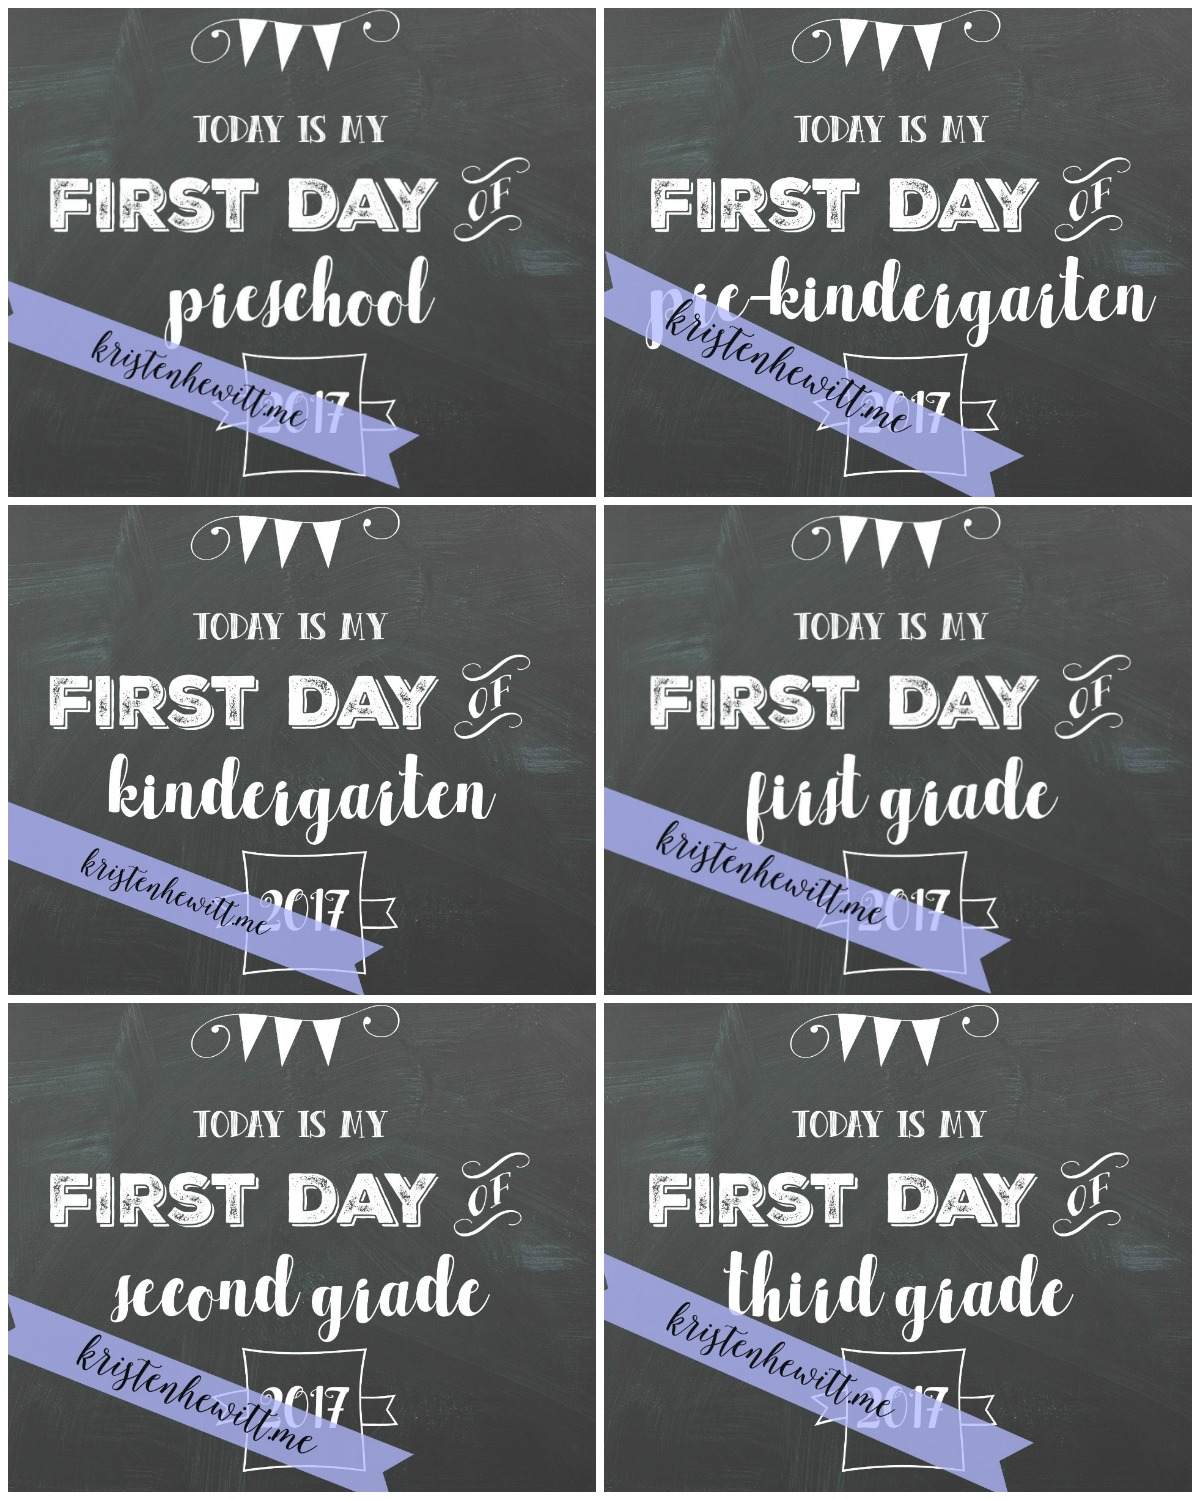 photo about Free Chalkboard Printable named Free of charge Chalkboard To start with Working day of Higher education Printables - Kristen Hewitt